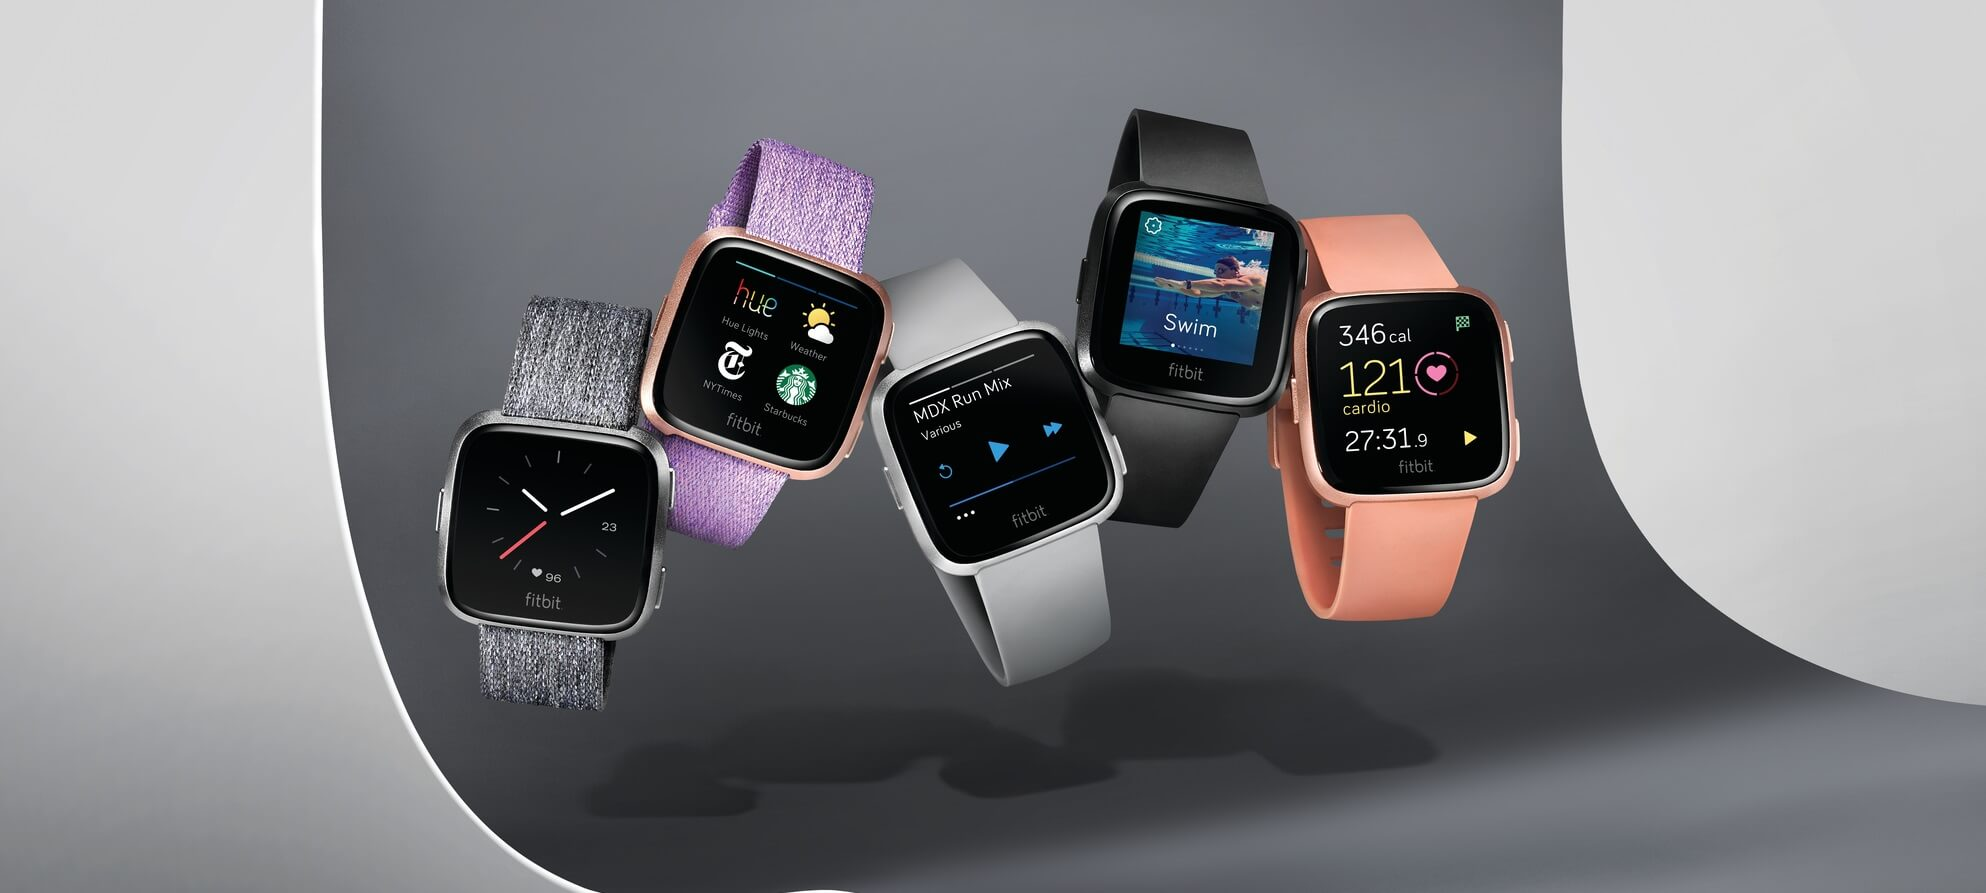 16 Cool Wearable Technology Gadgets of 2018 For Modern ...